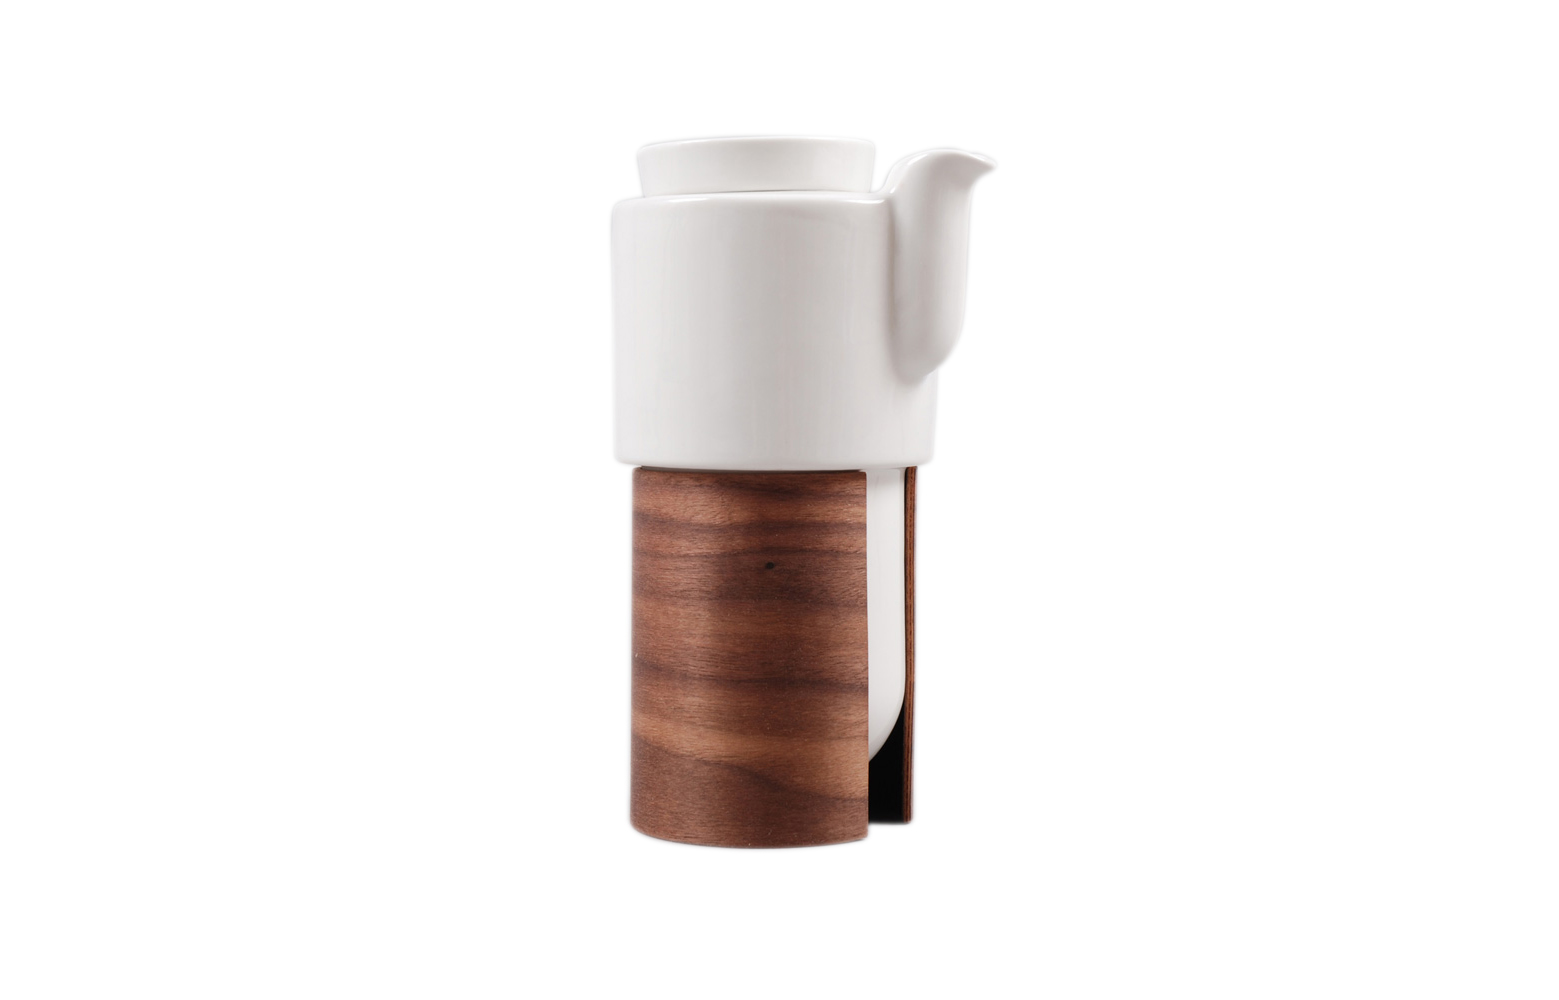 Tonfisk coffee/tea pot, The Goodhood Store, £69. Review: Mark Blackmore